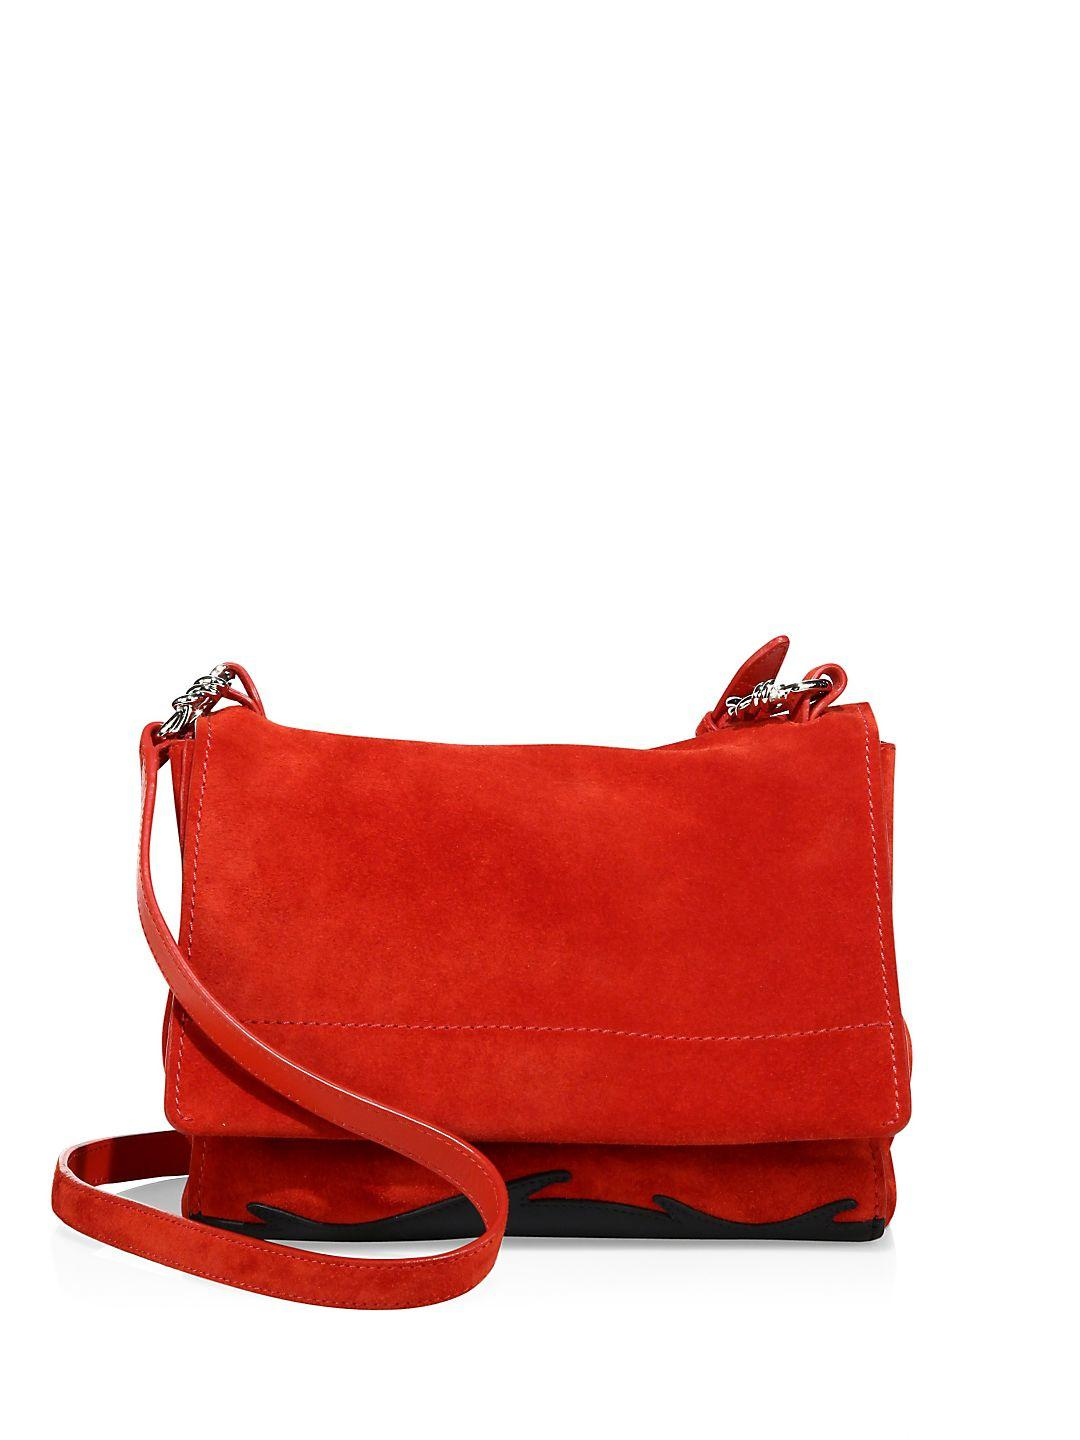 3.1 Phillip Lim Ames Suede Crossbody in Red